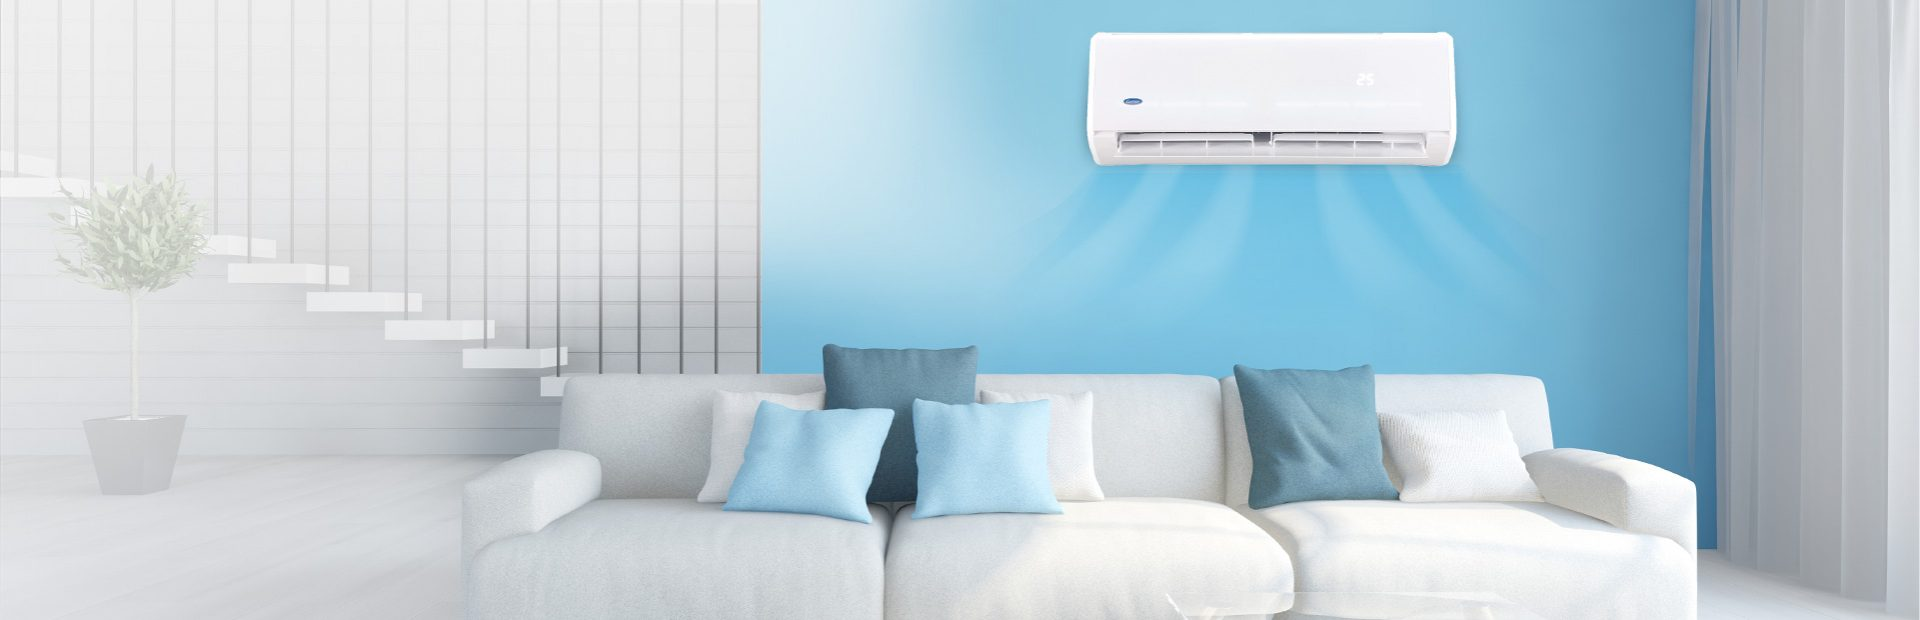 whirlpool air conditioner service centre